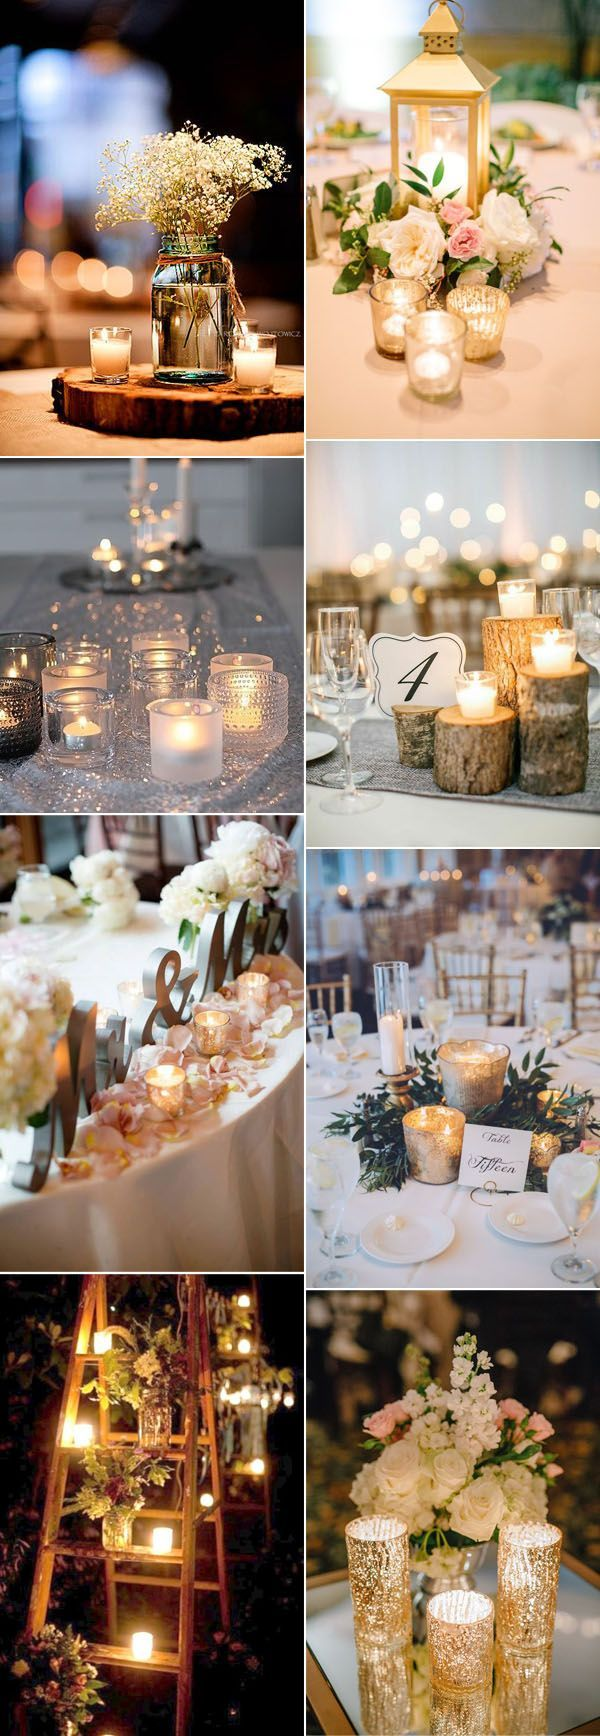 Wedding light decoration ideas   Fancy Candlelight Ideas to Add Romance to Your Weddings